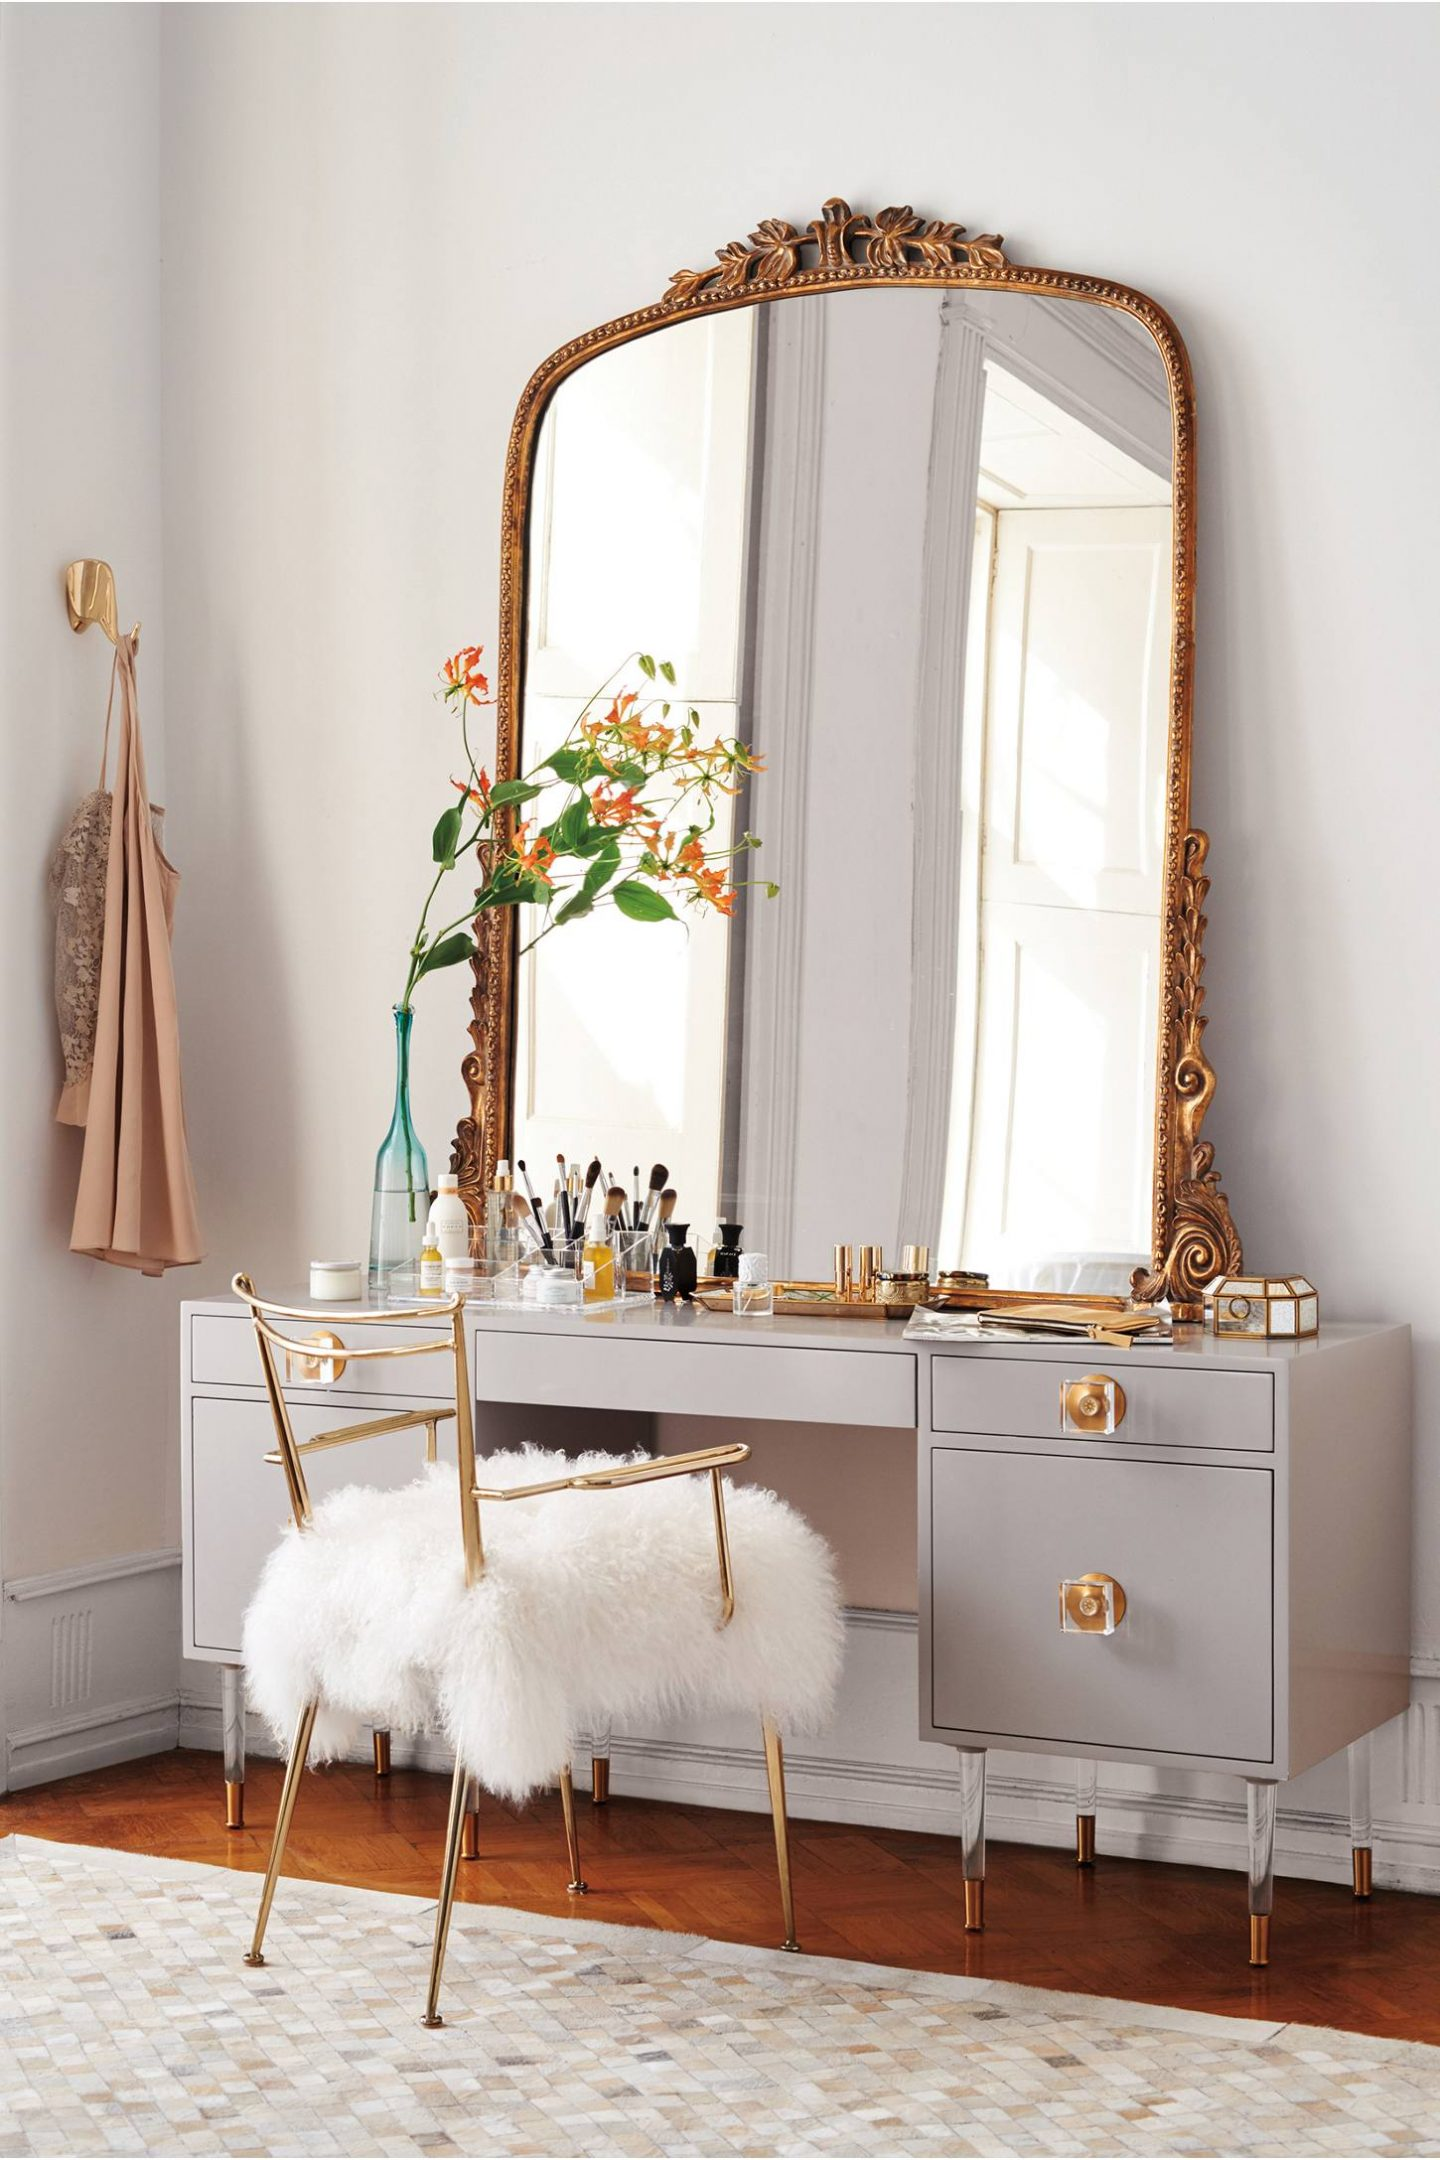 Feminine Furniture & Home Decor | My Favourites from Anthropologie